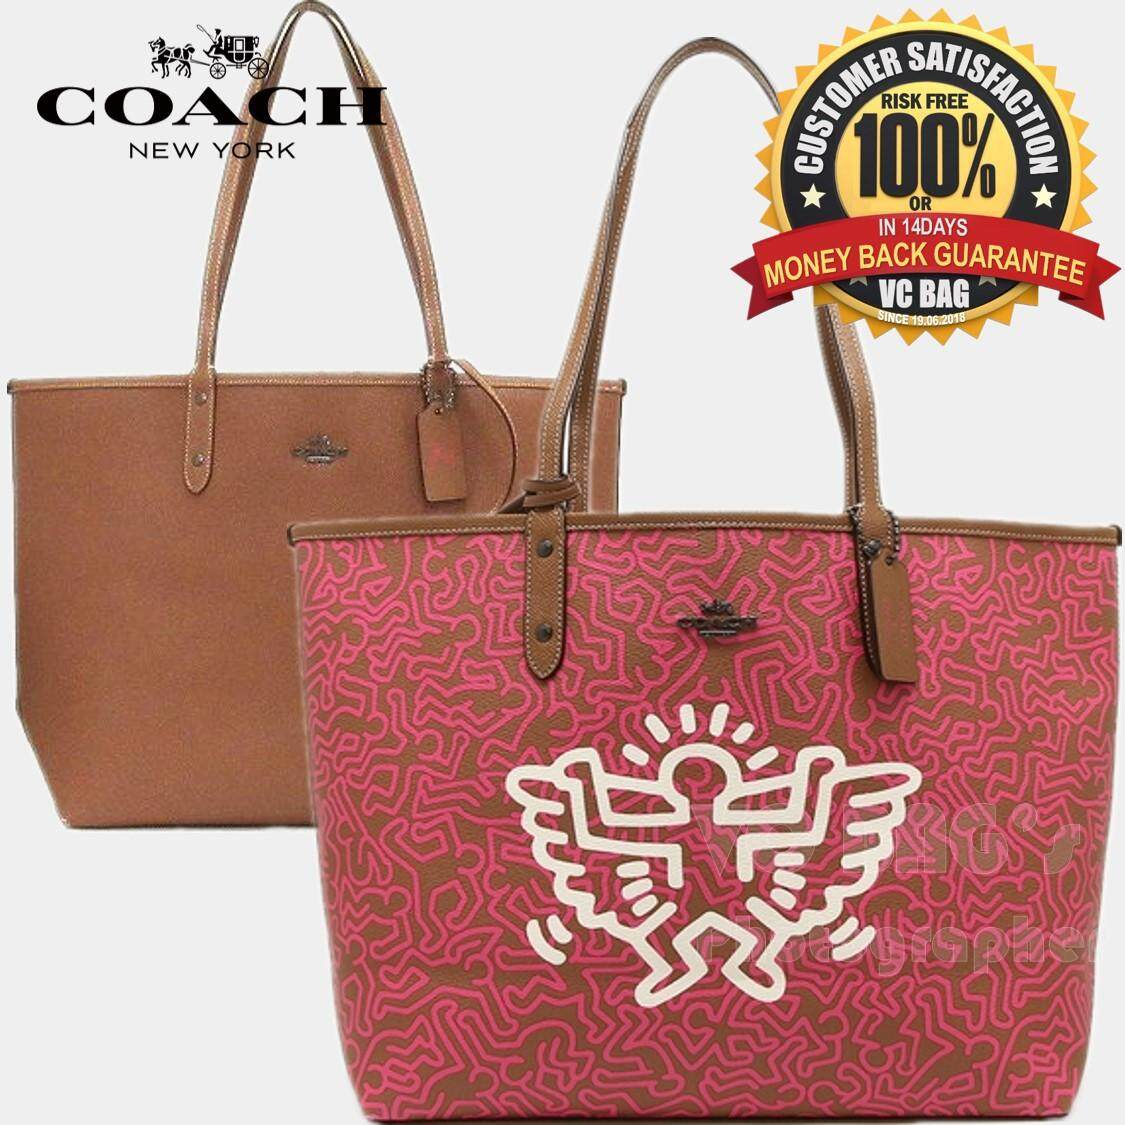 Coach Women Tote Bags Price In Malaysia Best Coach Women Tote Bags